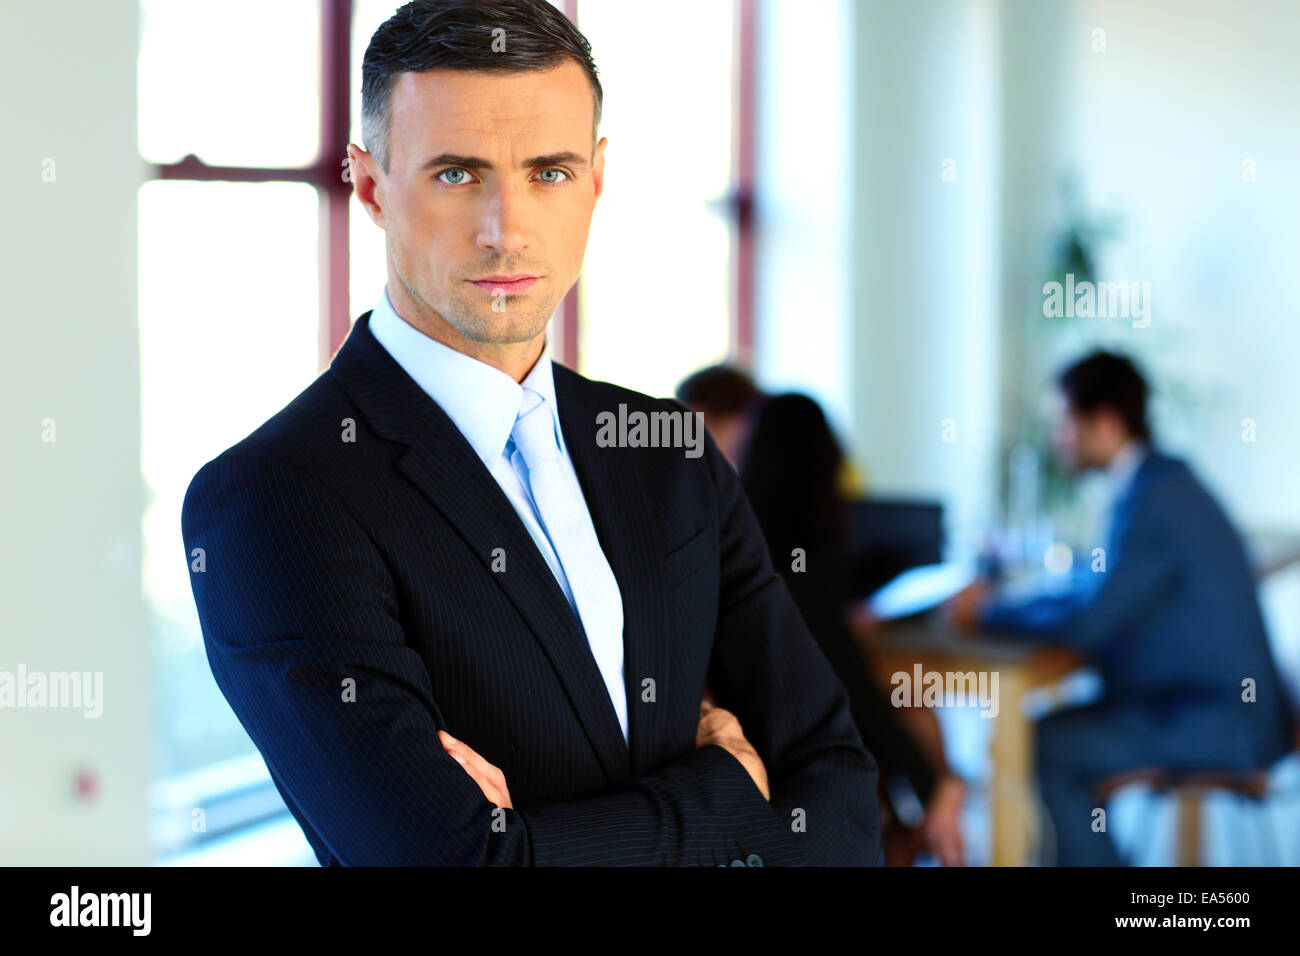 Serious businessman standing with arms folded devant des collègues Photo Stock